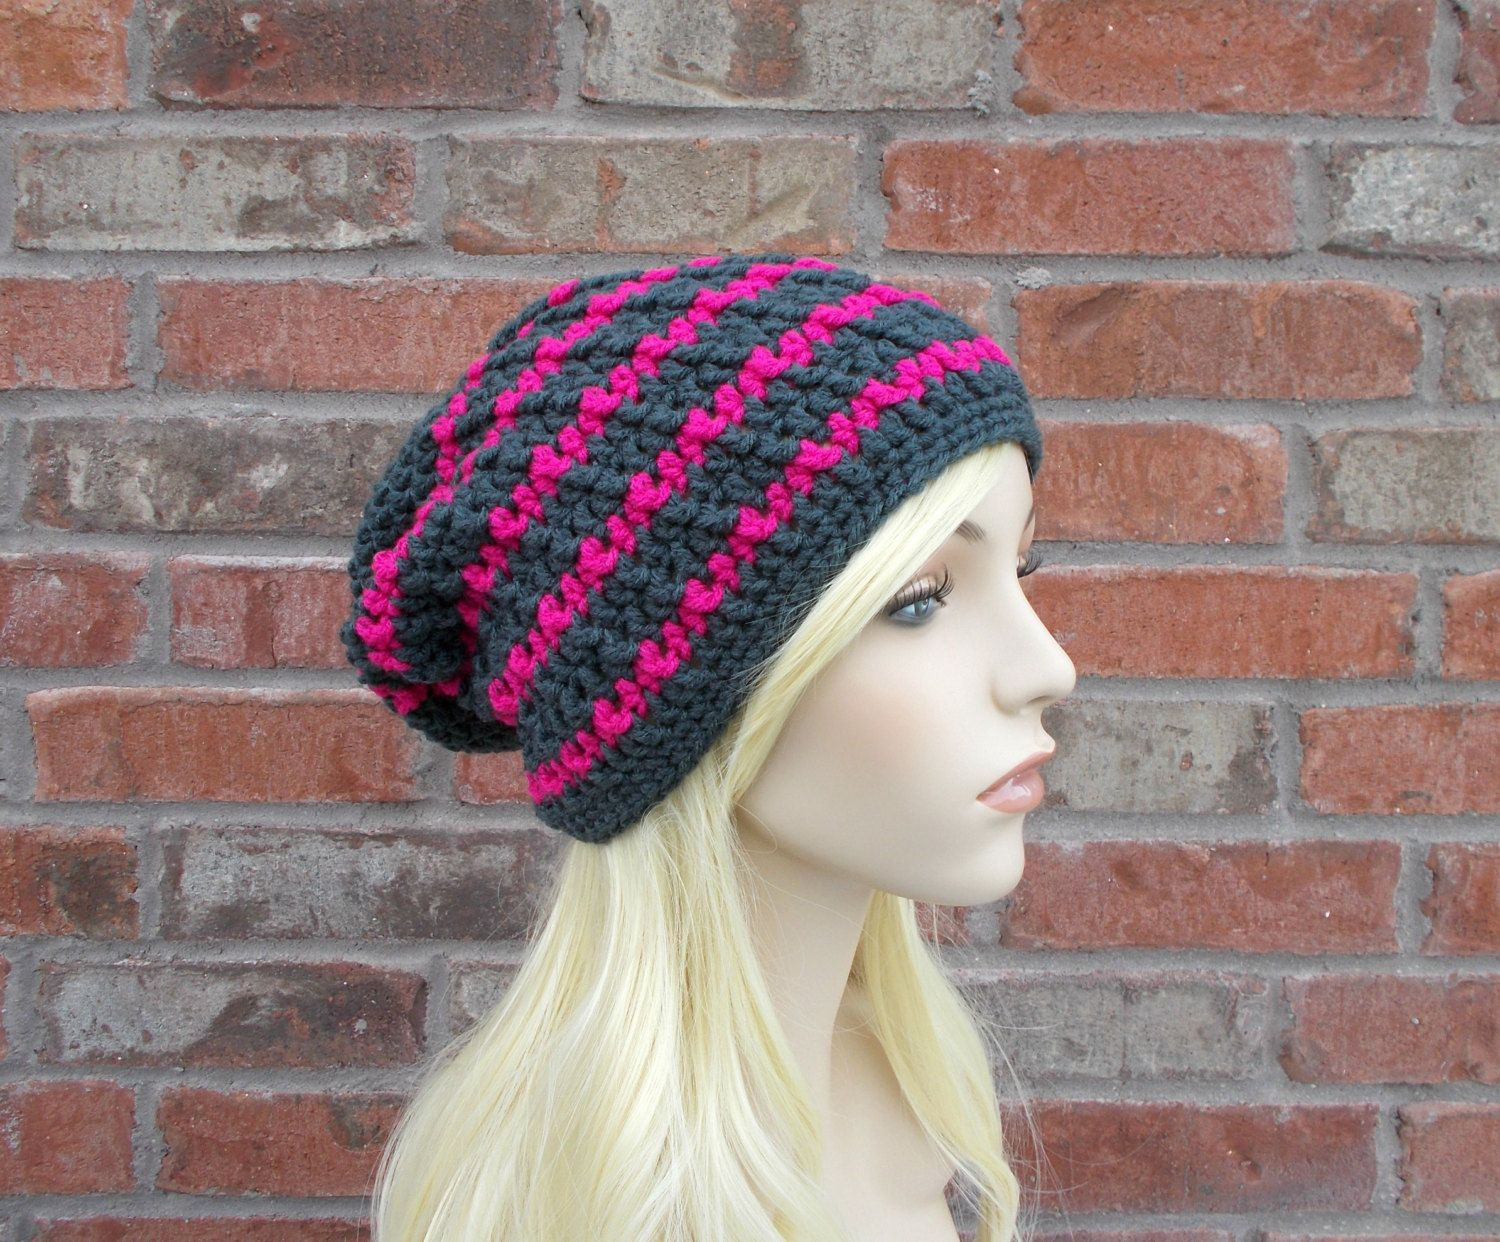 de5b73fd2ea37 Charcoal Gray Beanie Long Beanie Dark Grey and Hot Pink Striped Hat Slouchy  Beanie for Women Teenage Girl Gift Teen Hats by foreverandrea on Etsy